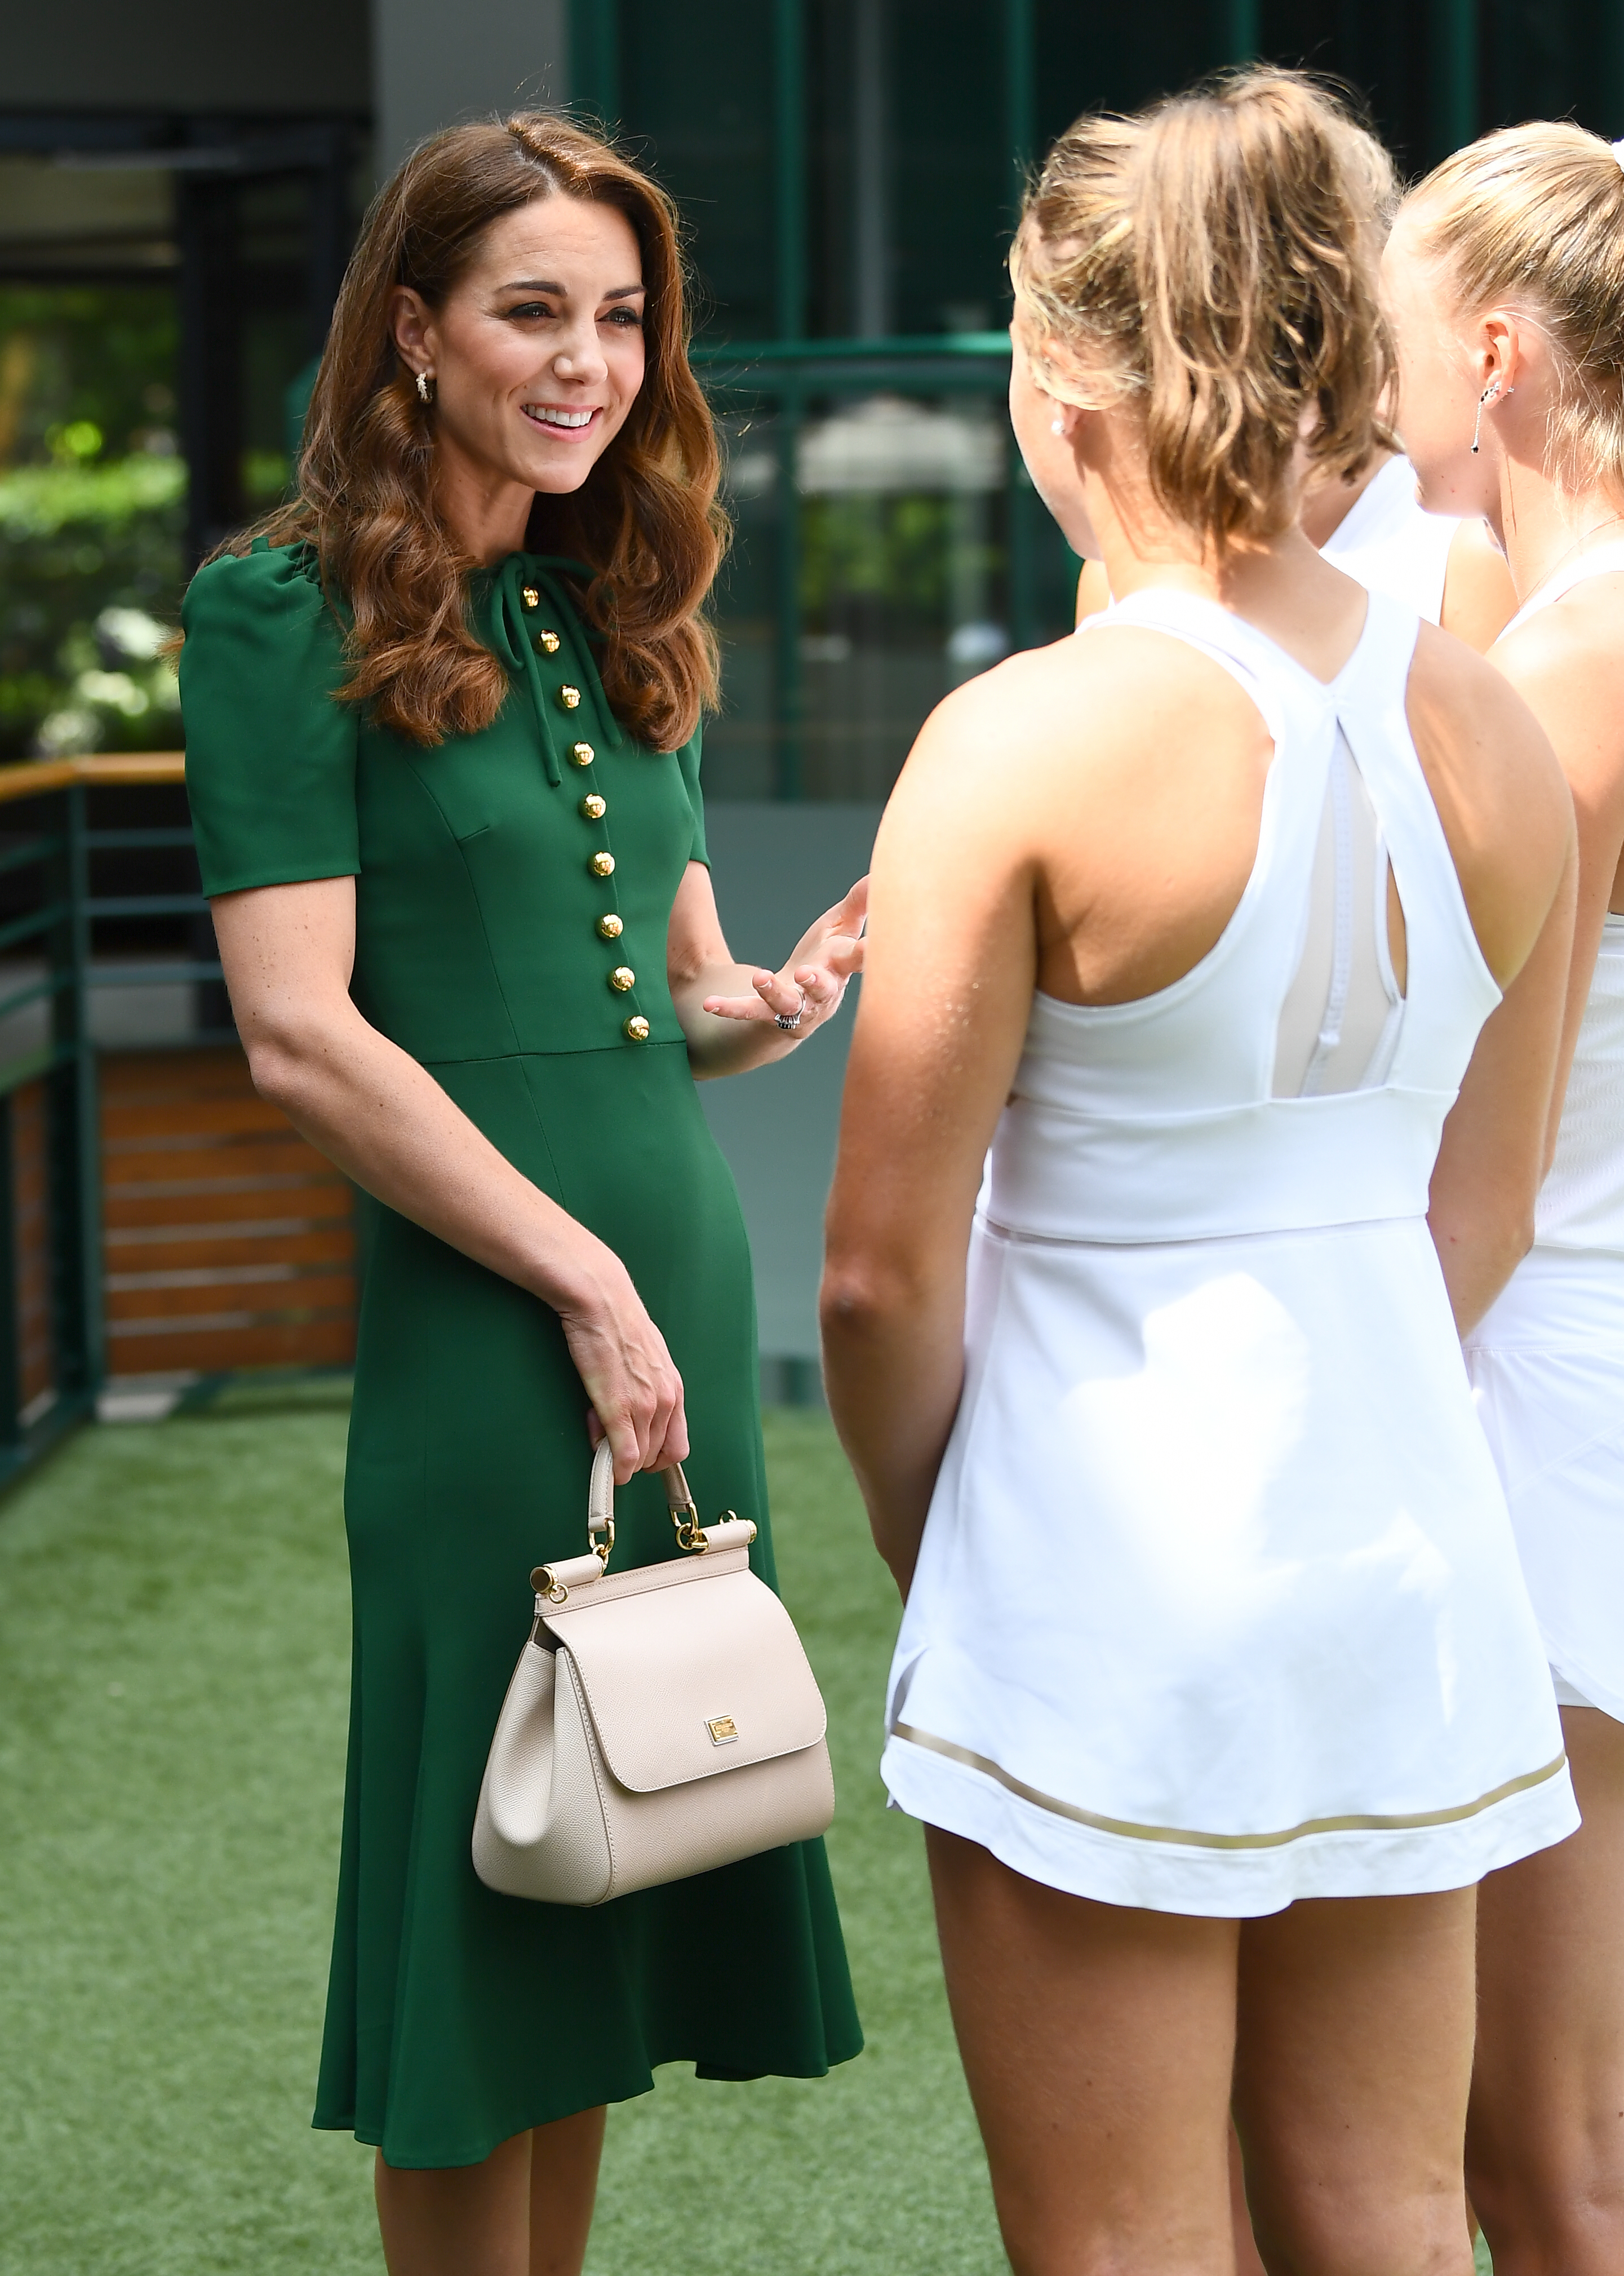 The Duchess of Cambridge meets junior players ahead of the Women's Final on day twelve of the Wimbledon Championships at the All England Lawn Tennis and Croquet Club, Wimbledon.